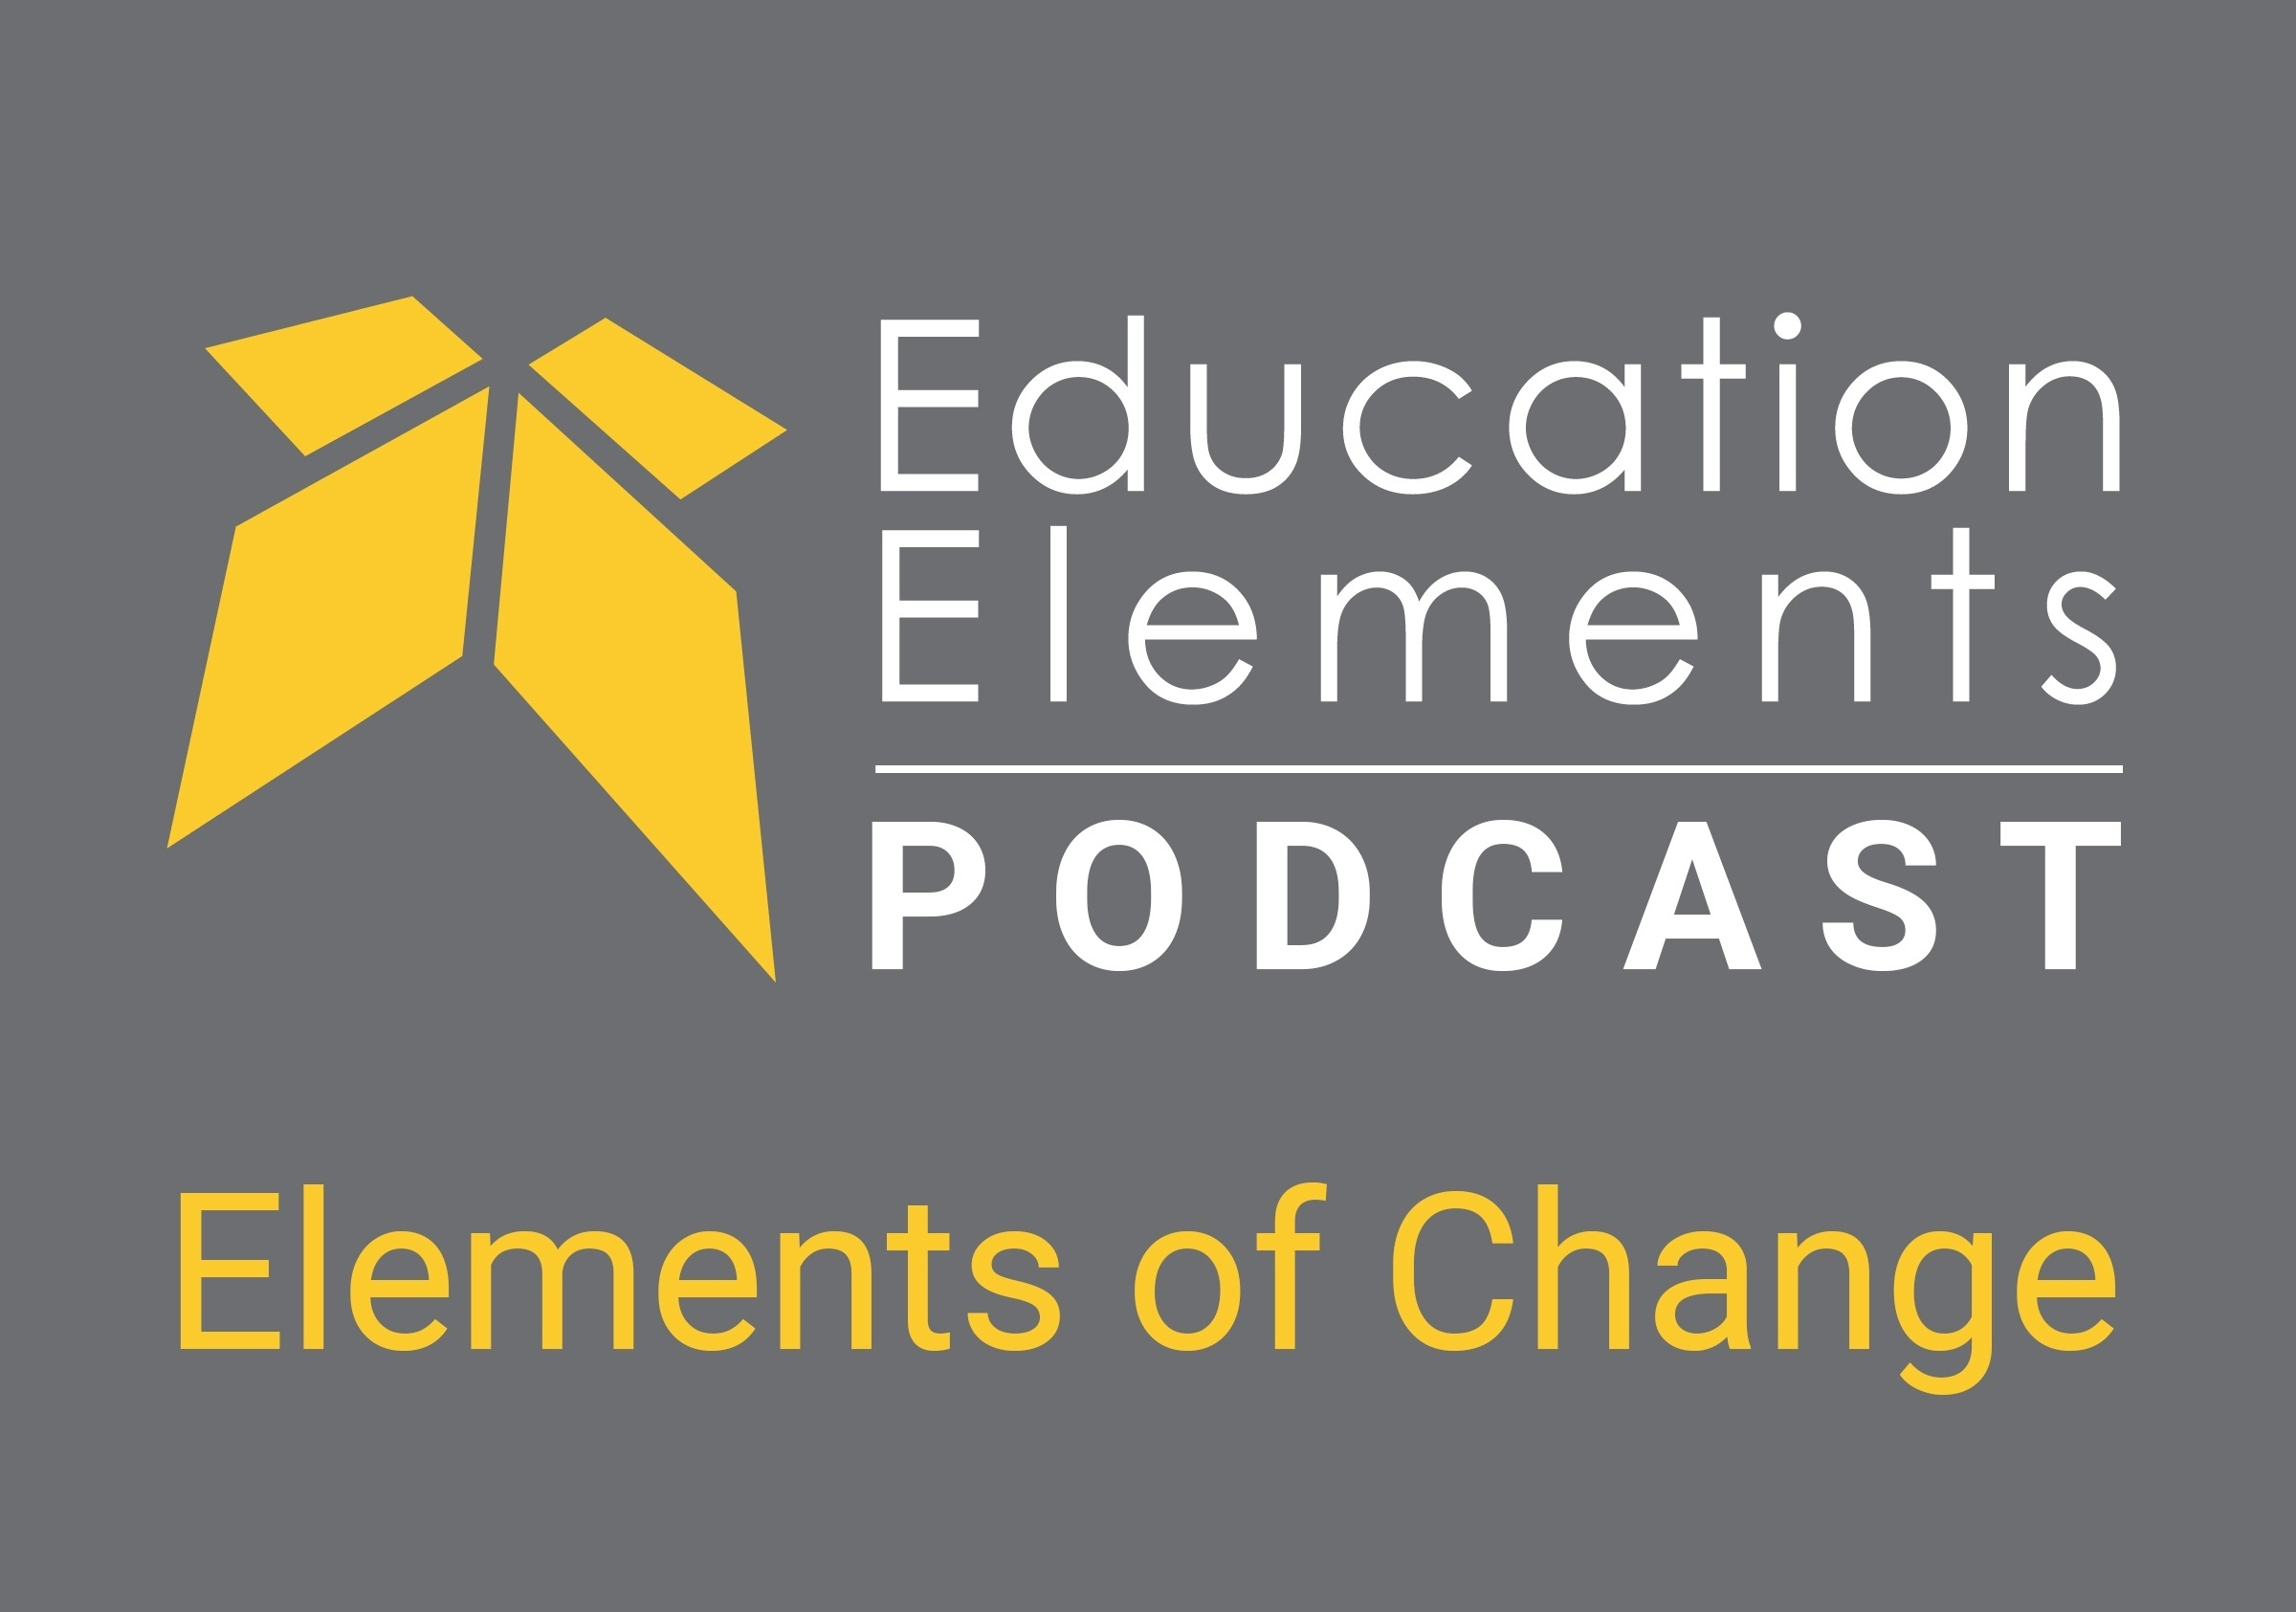 Elements of Change Podcast Logo which reads Education Elements Podcast Elements of Change